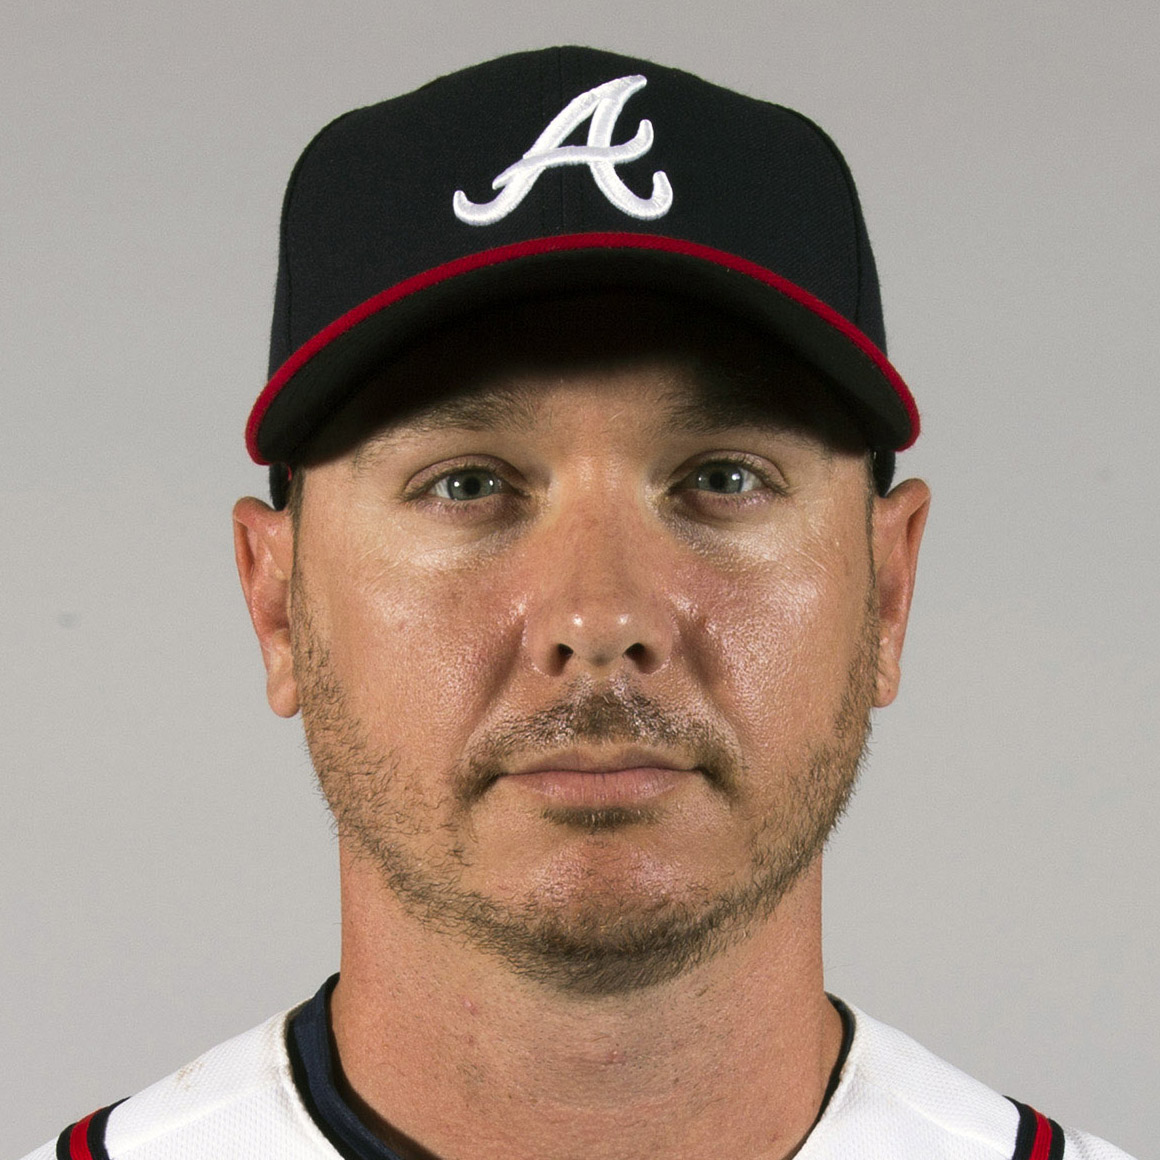 Scott Kazmir (L) Headshot